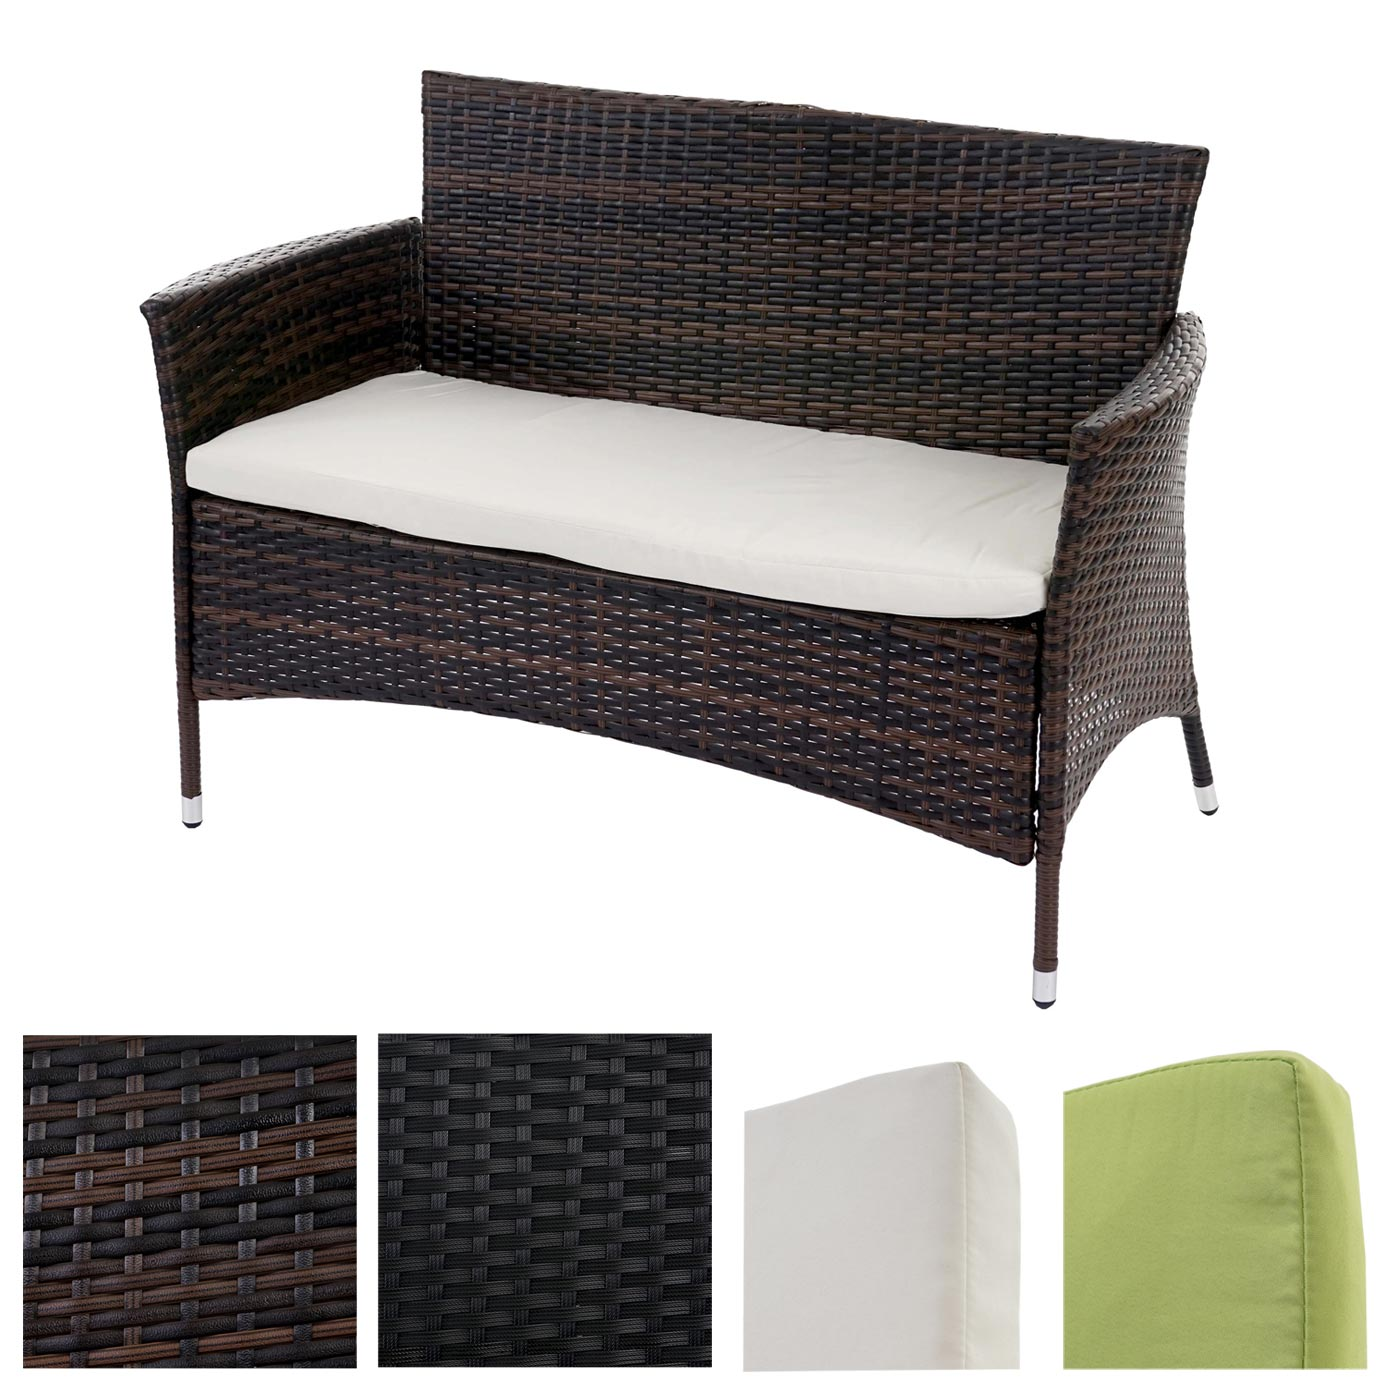 poly rattan sitzbank rom basic gartenbank bank inkl sitzkissen ebay. Black Bedroom Furniture Sets. Home Design Ideas